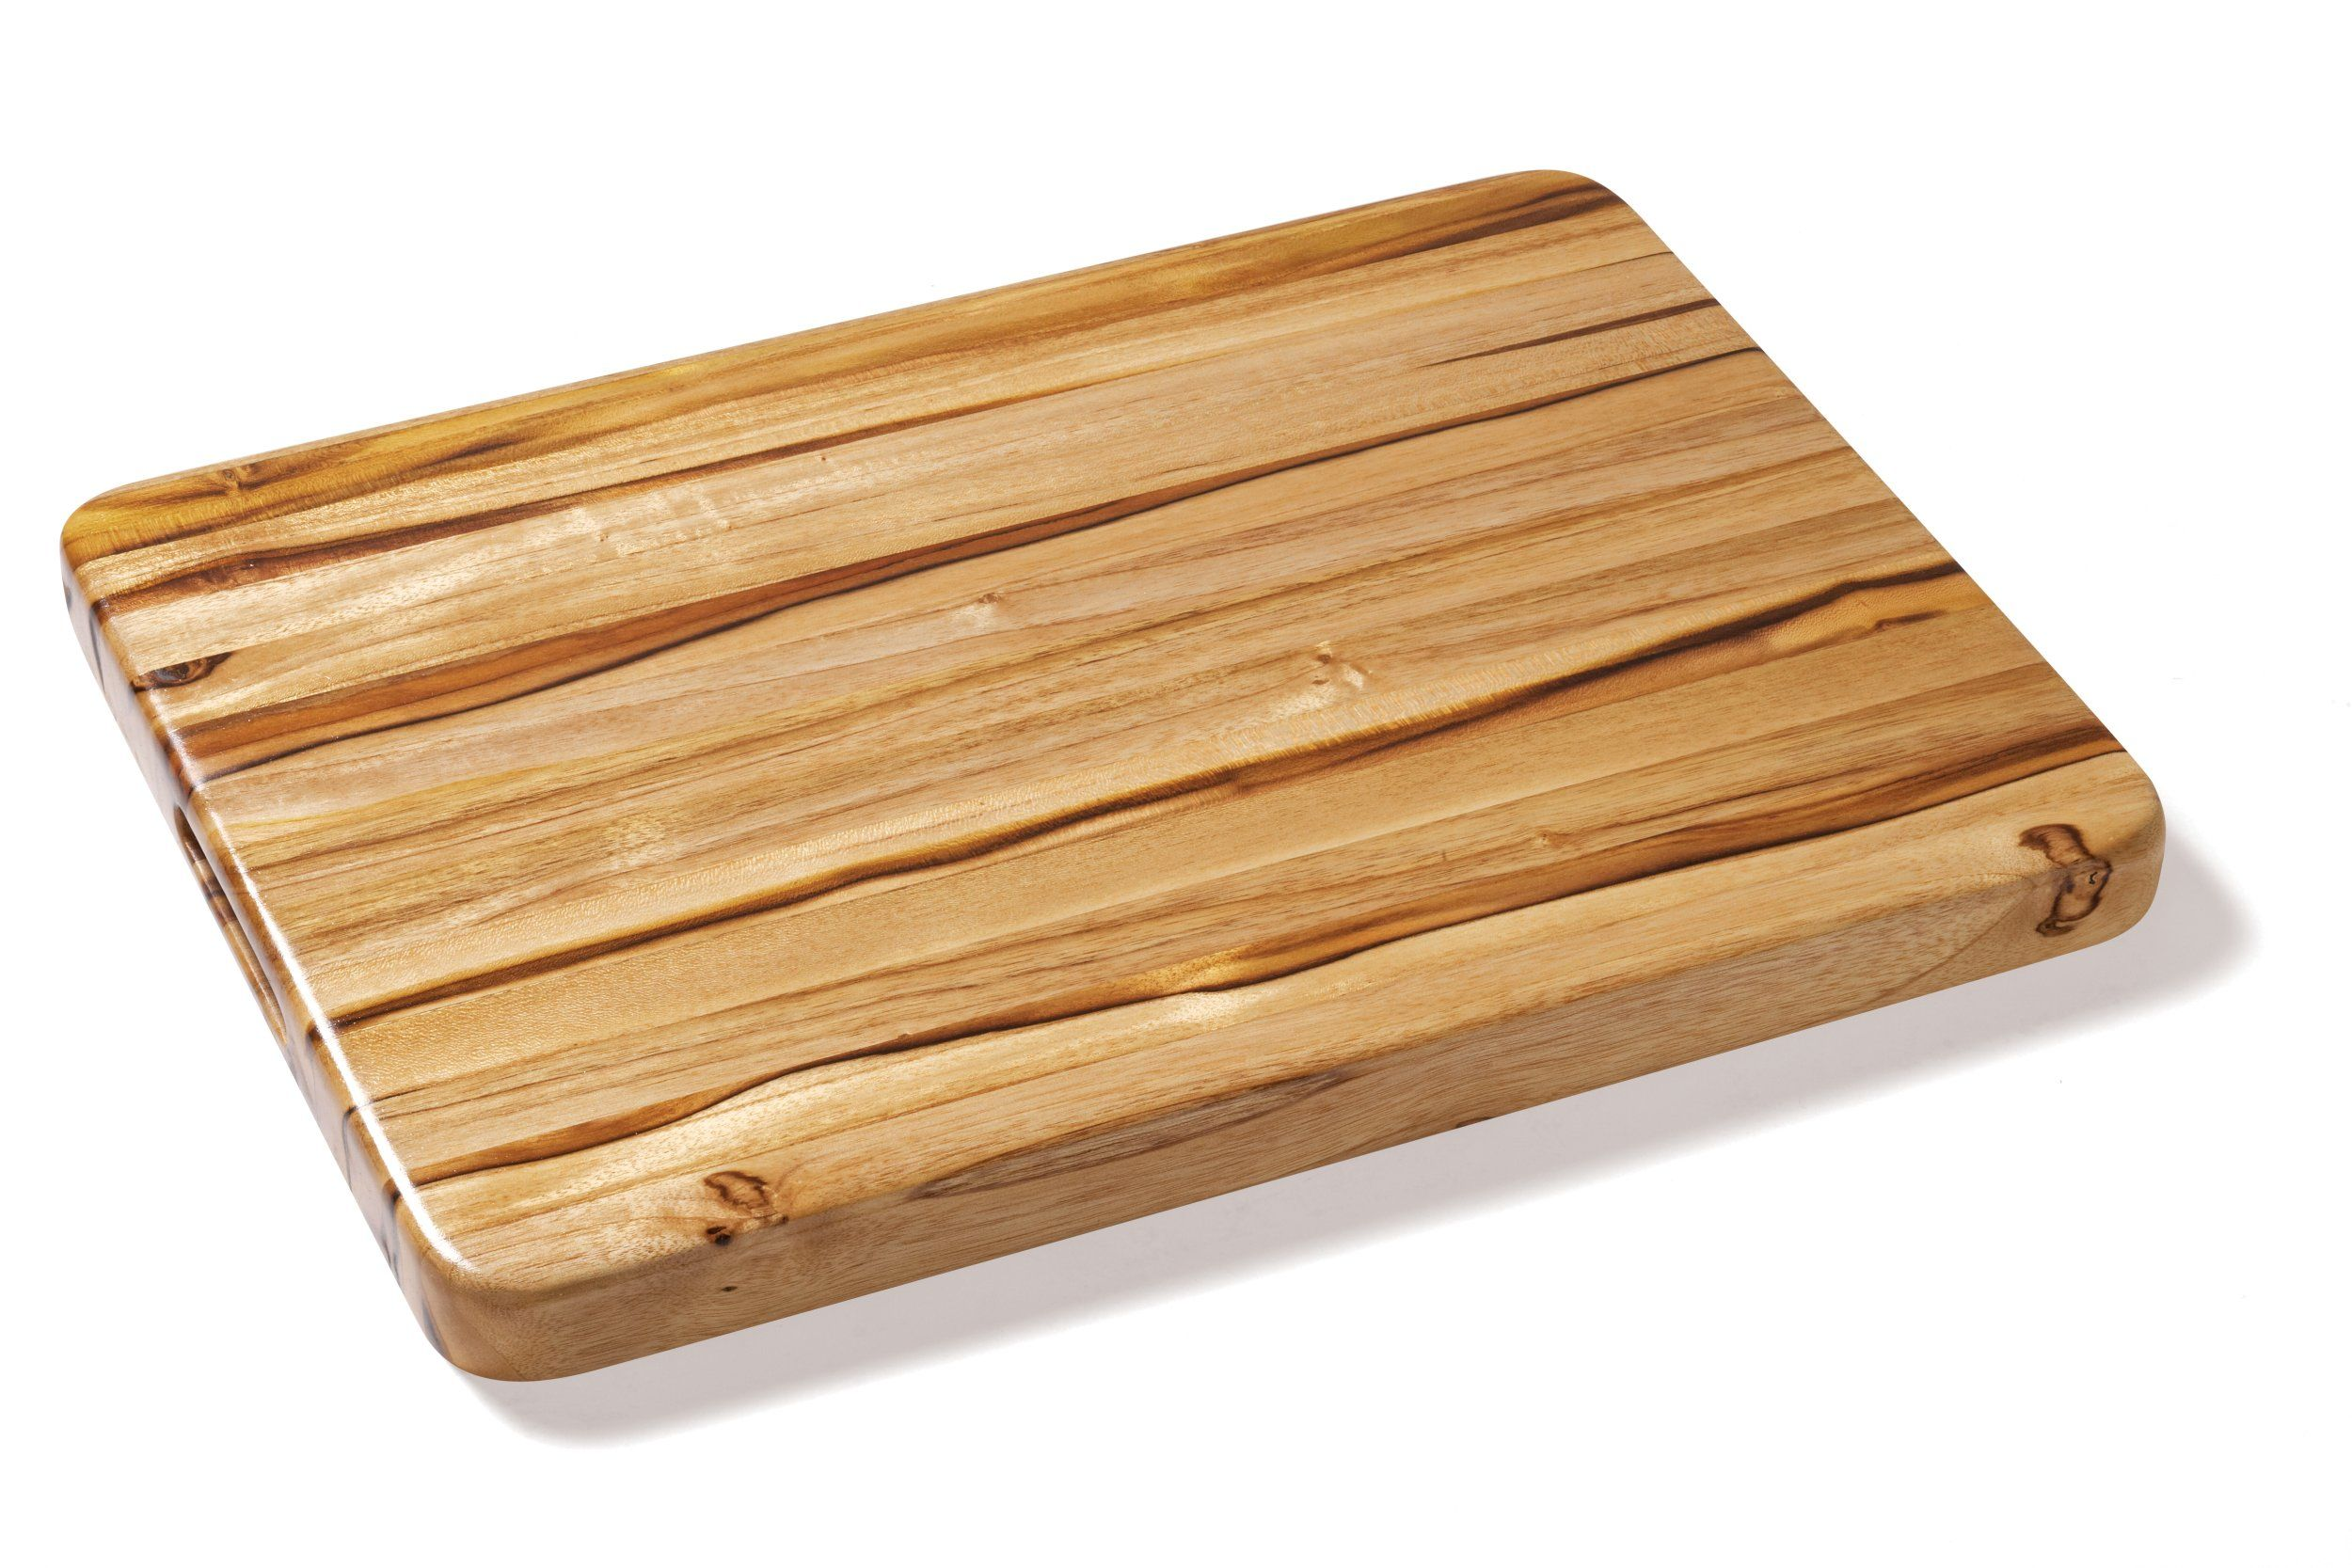 Ironwood Gourmet Memphis Pyramid Carving Board By Ironwood Gourmet. $85.50.  Made From Acacia Wood. Features A Field Of Pyramids To Stabilize Your Ru2026